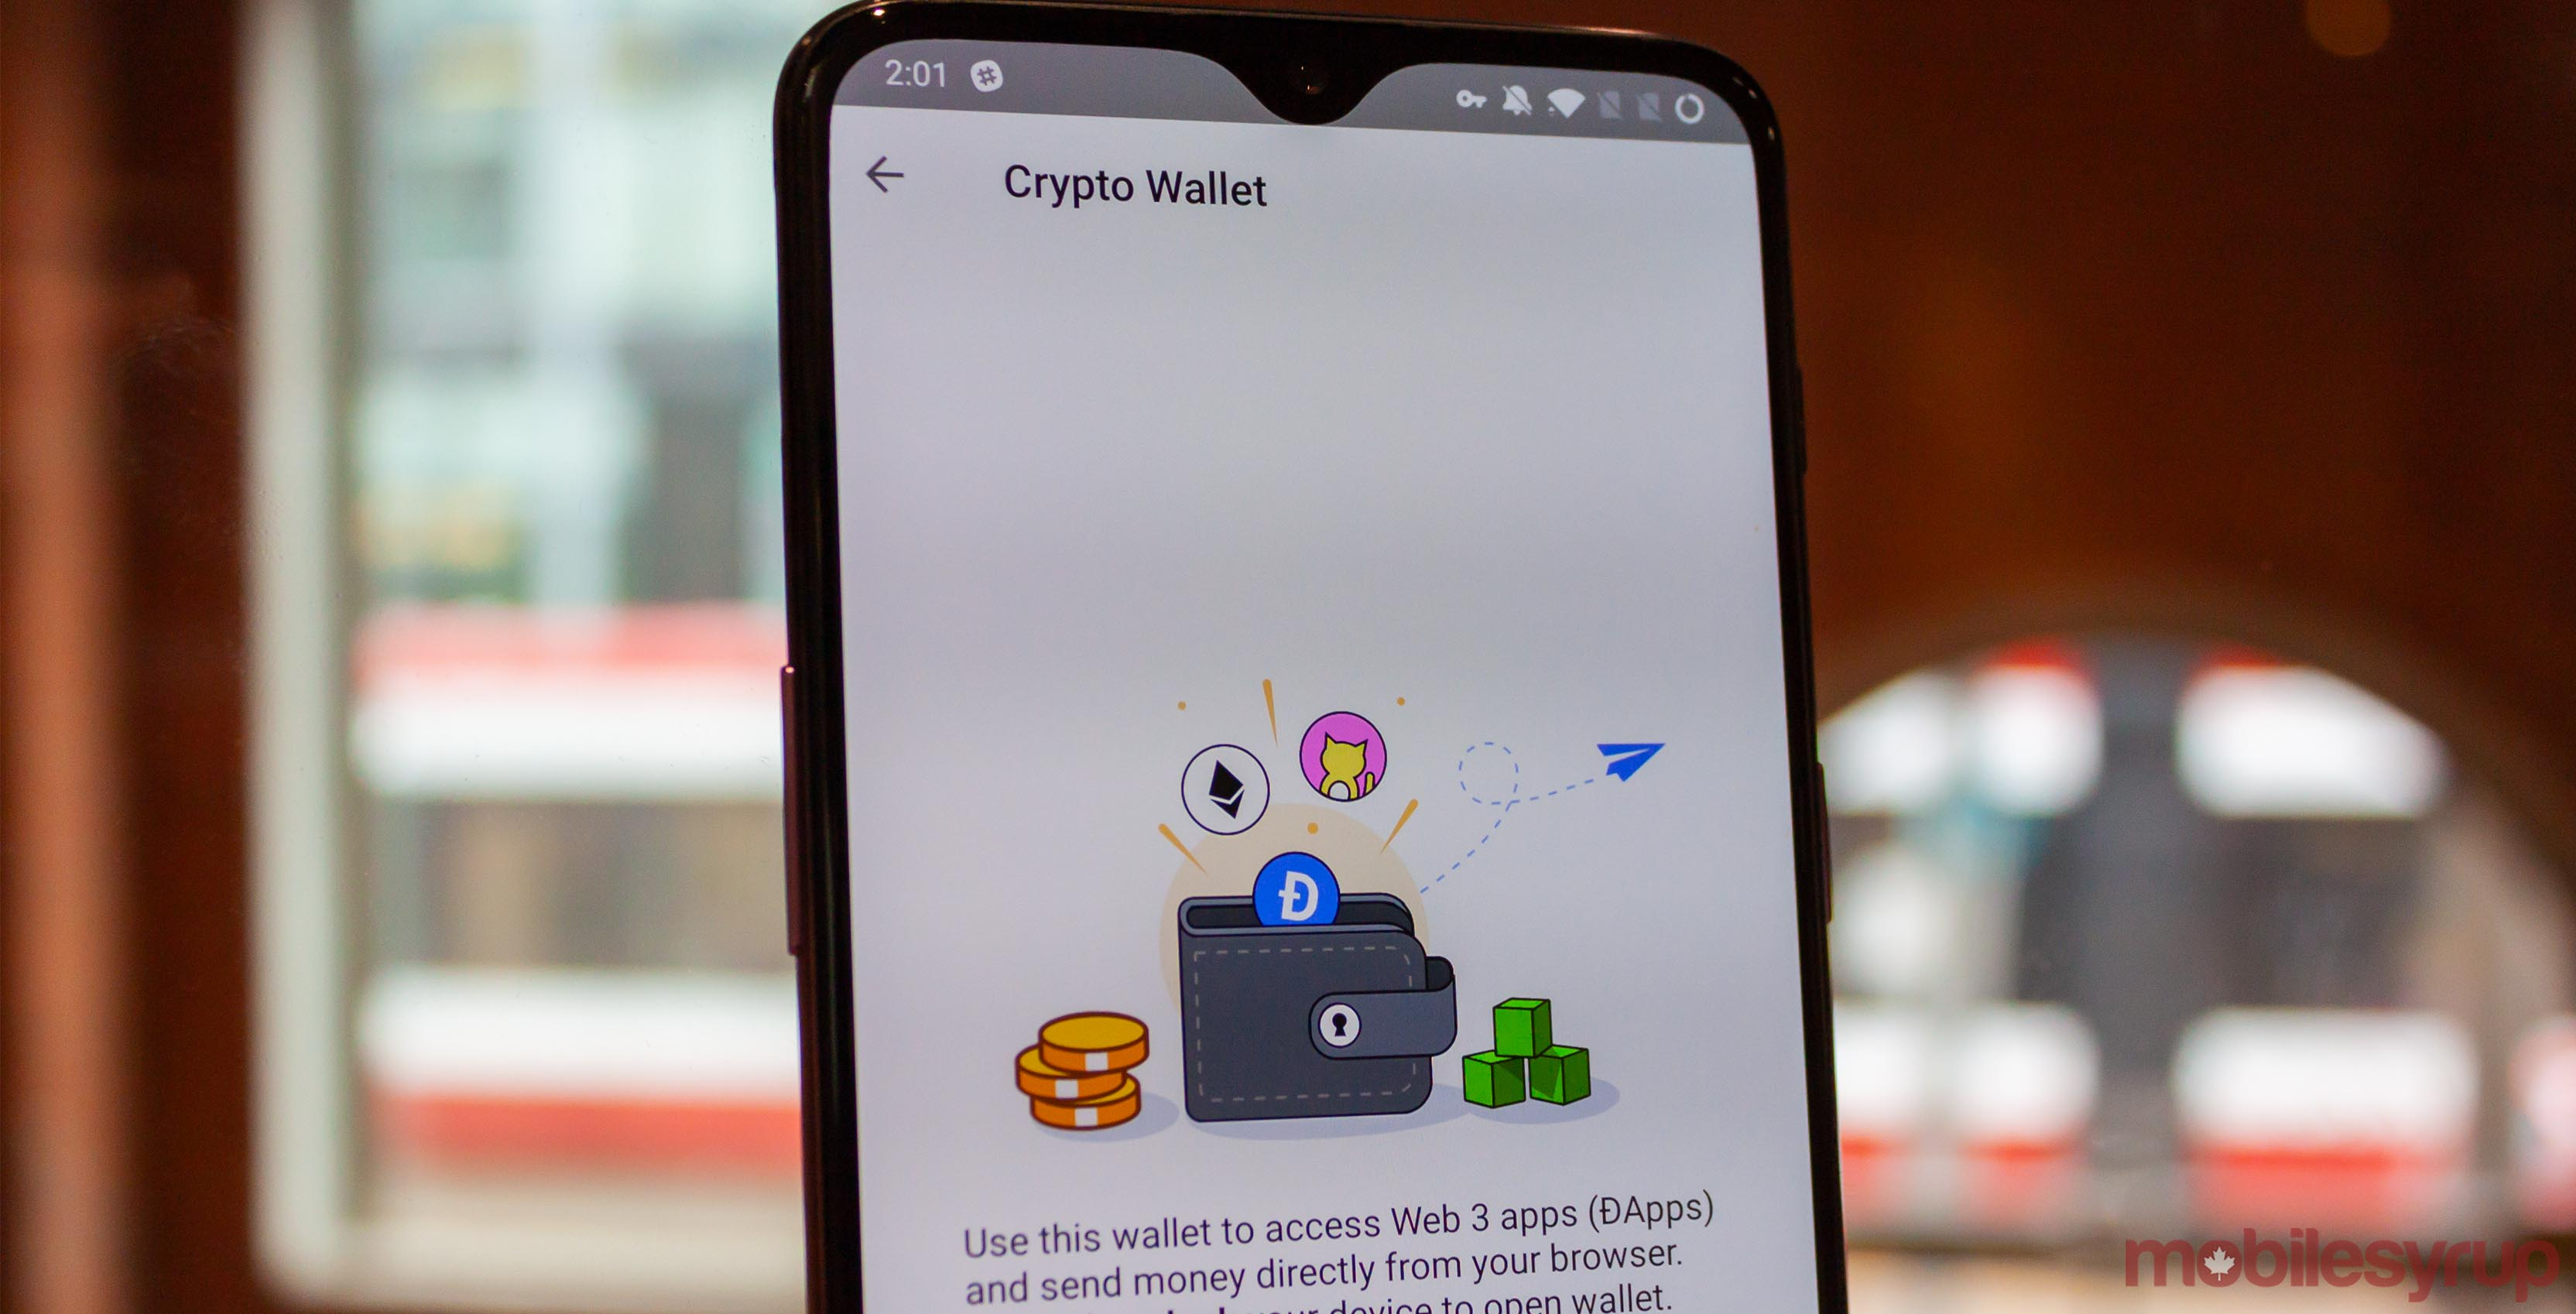 Opera for Android Crypto Wallet